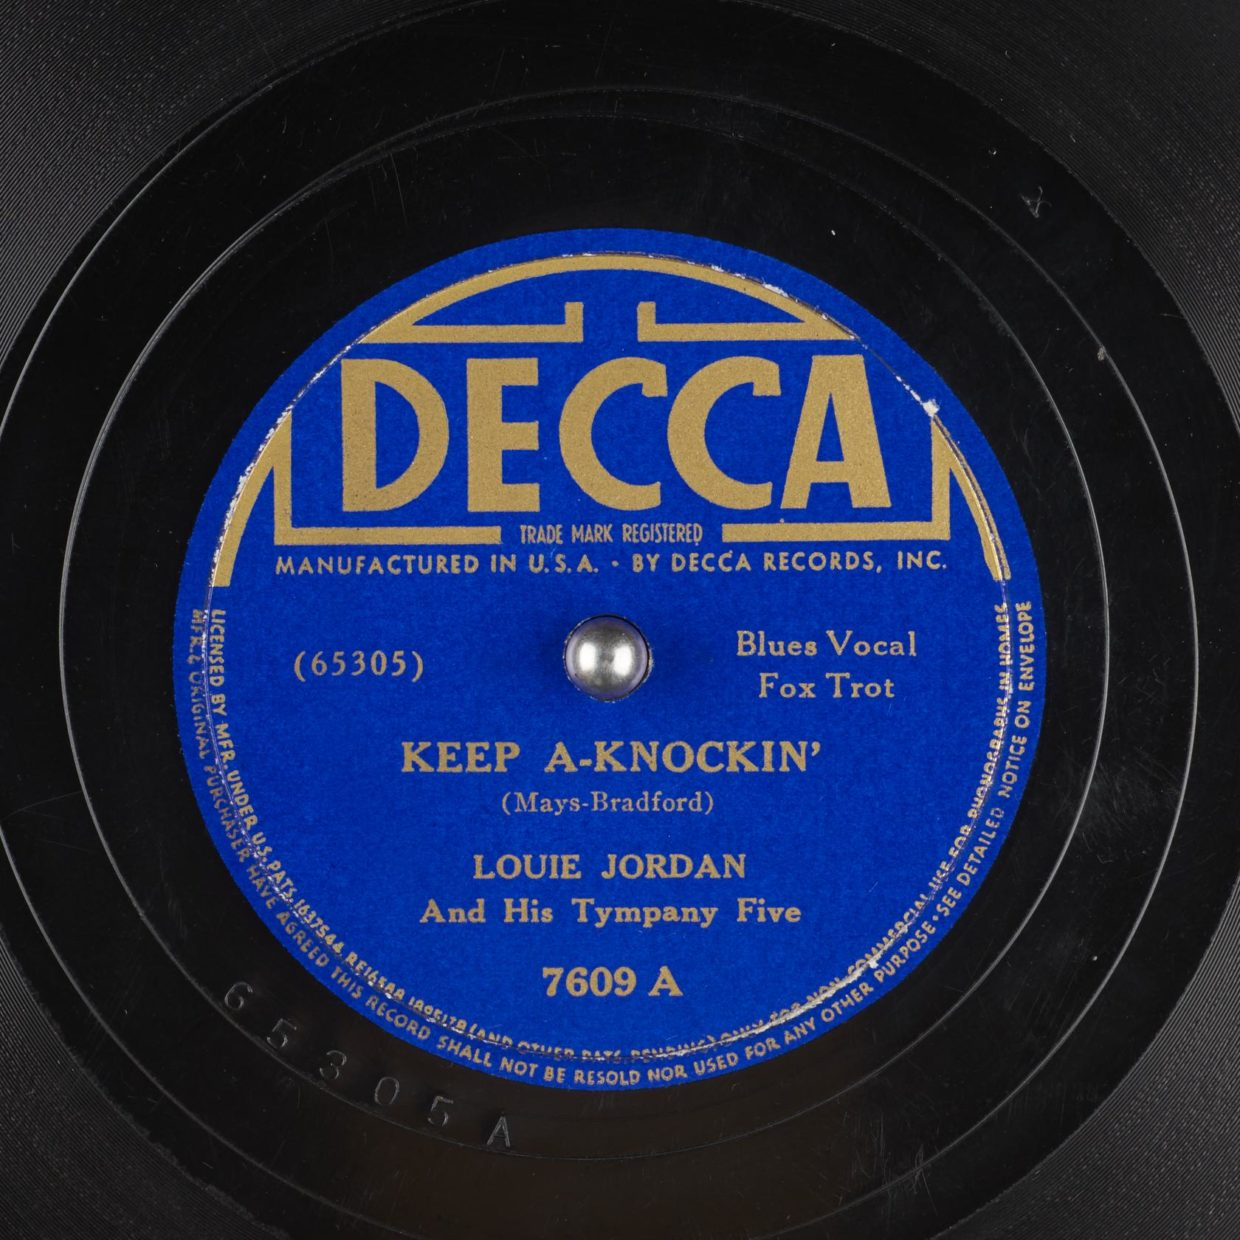 Above is an image of the original Keep A Knockin' record.